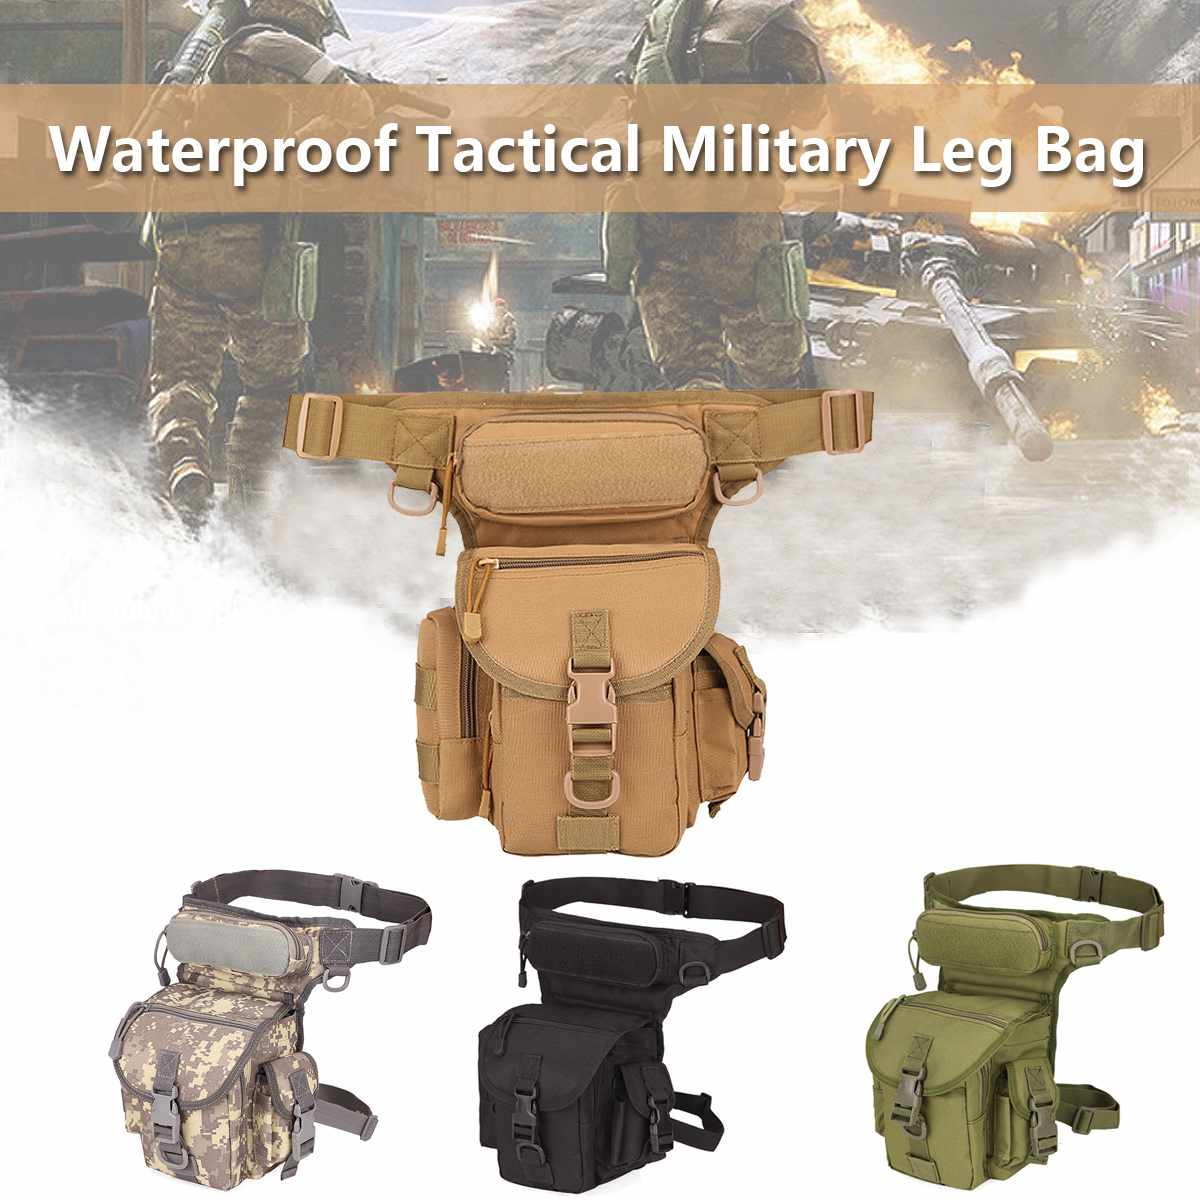 NEW Tactical Waist Bag Drop Leg Bags Tool Camping Hiking Trekking Military Shoulder Saddle Oxford Cloth Multi-function Pack